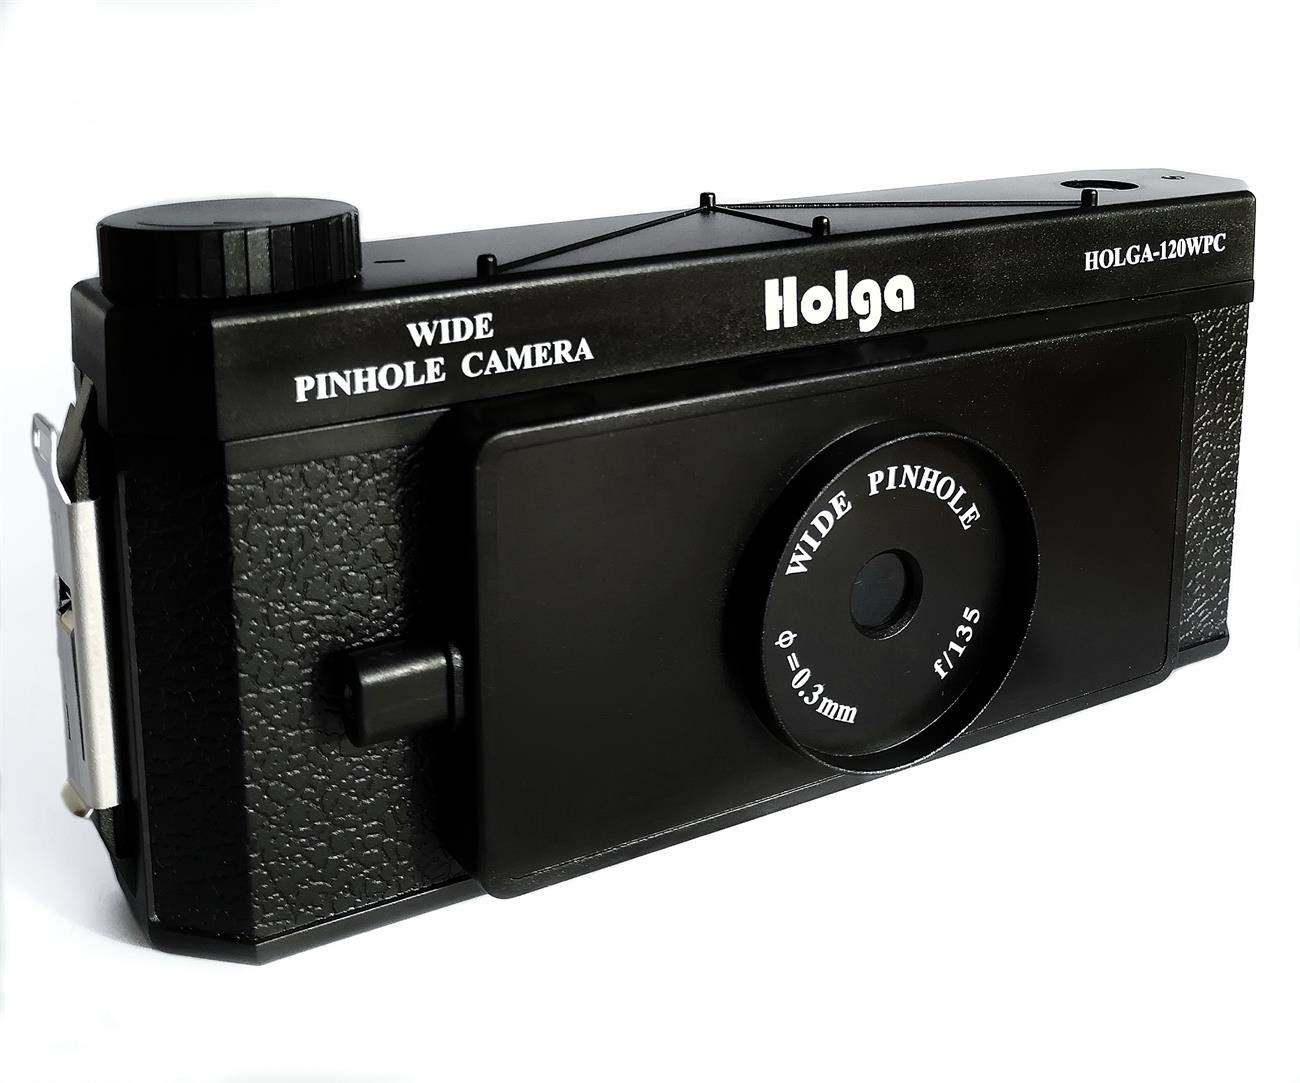 Holga 120 WPC Panoramic Pin Hole Camera Wide Format Film Lomo Camera Black by Holga